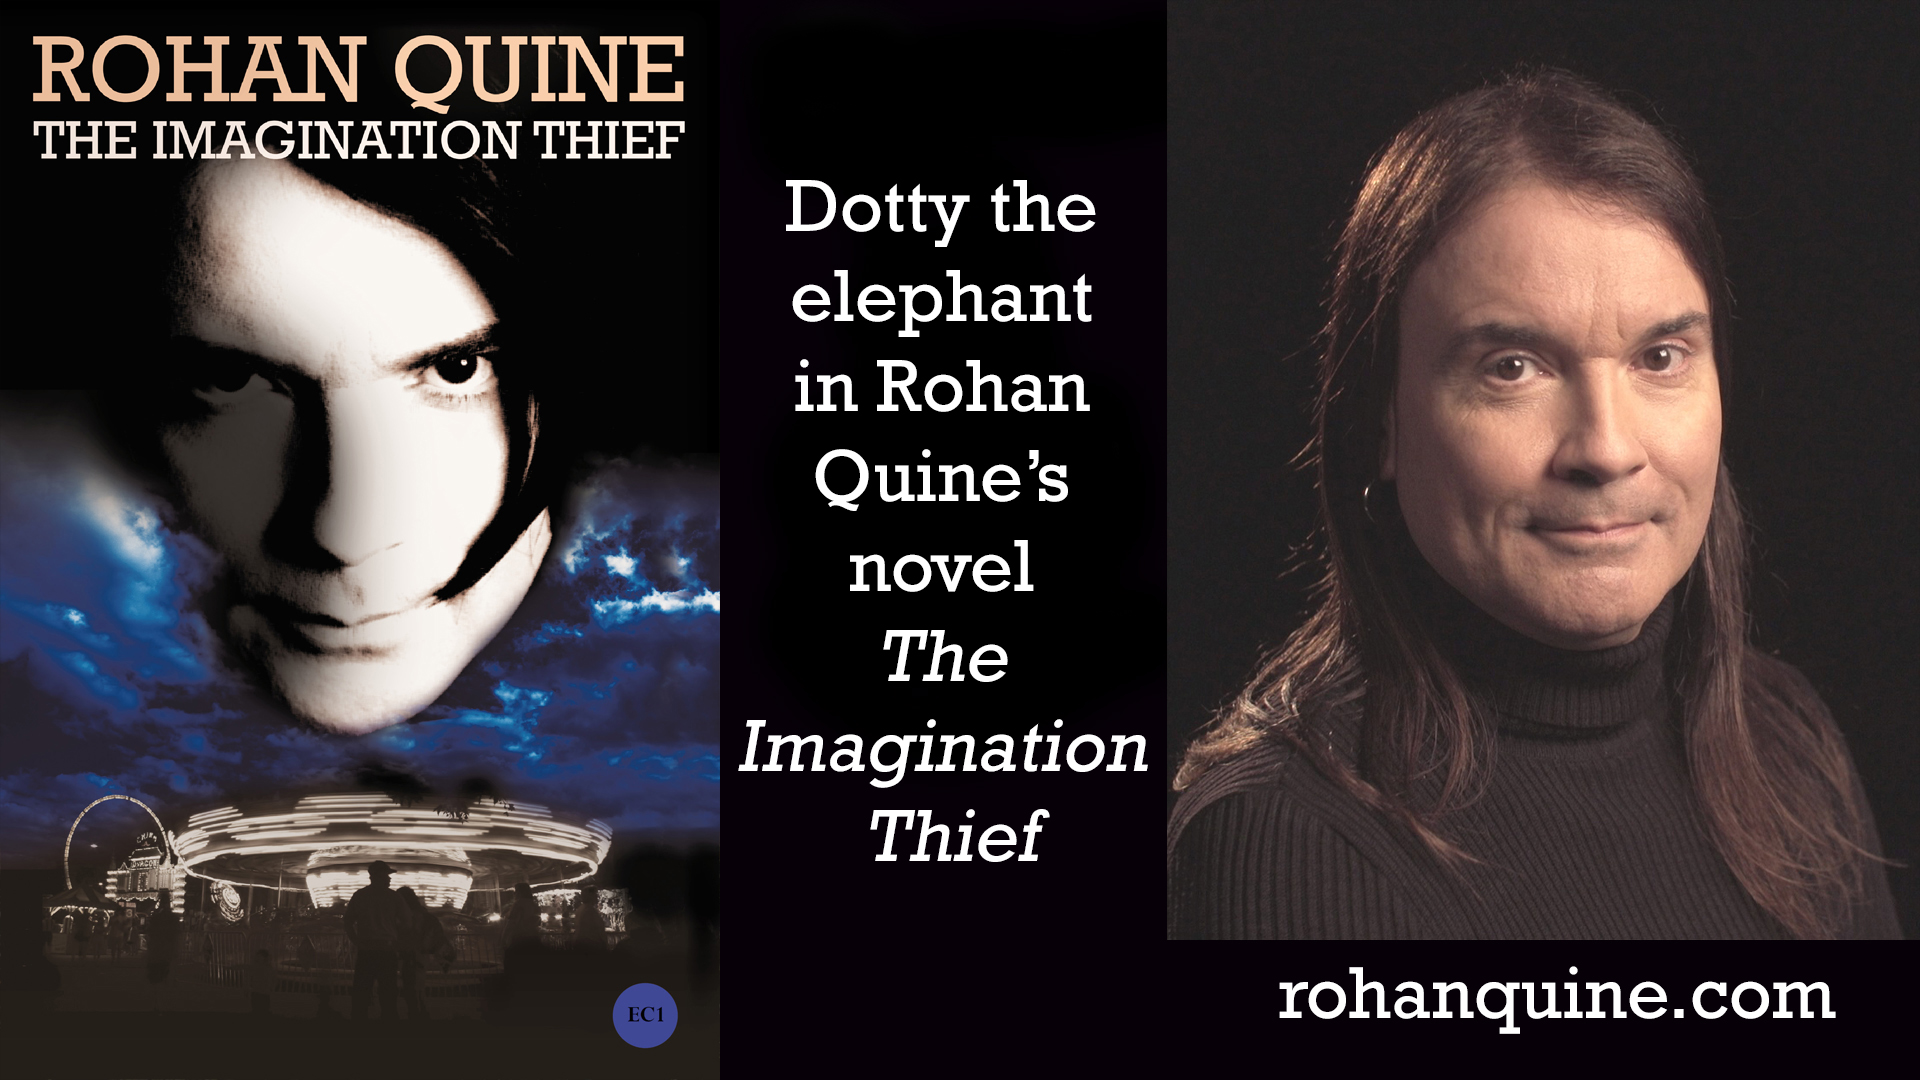 THE IMAGINATION THIEF (novel) by Rohan Quine - Dotty the elephant